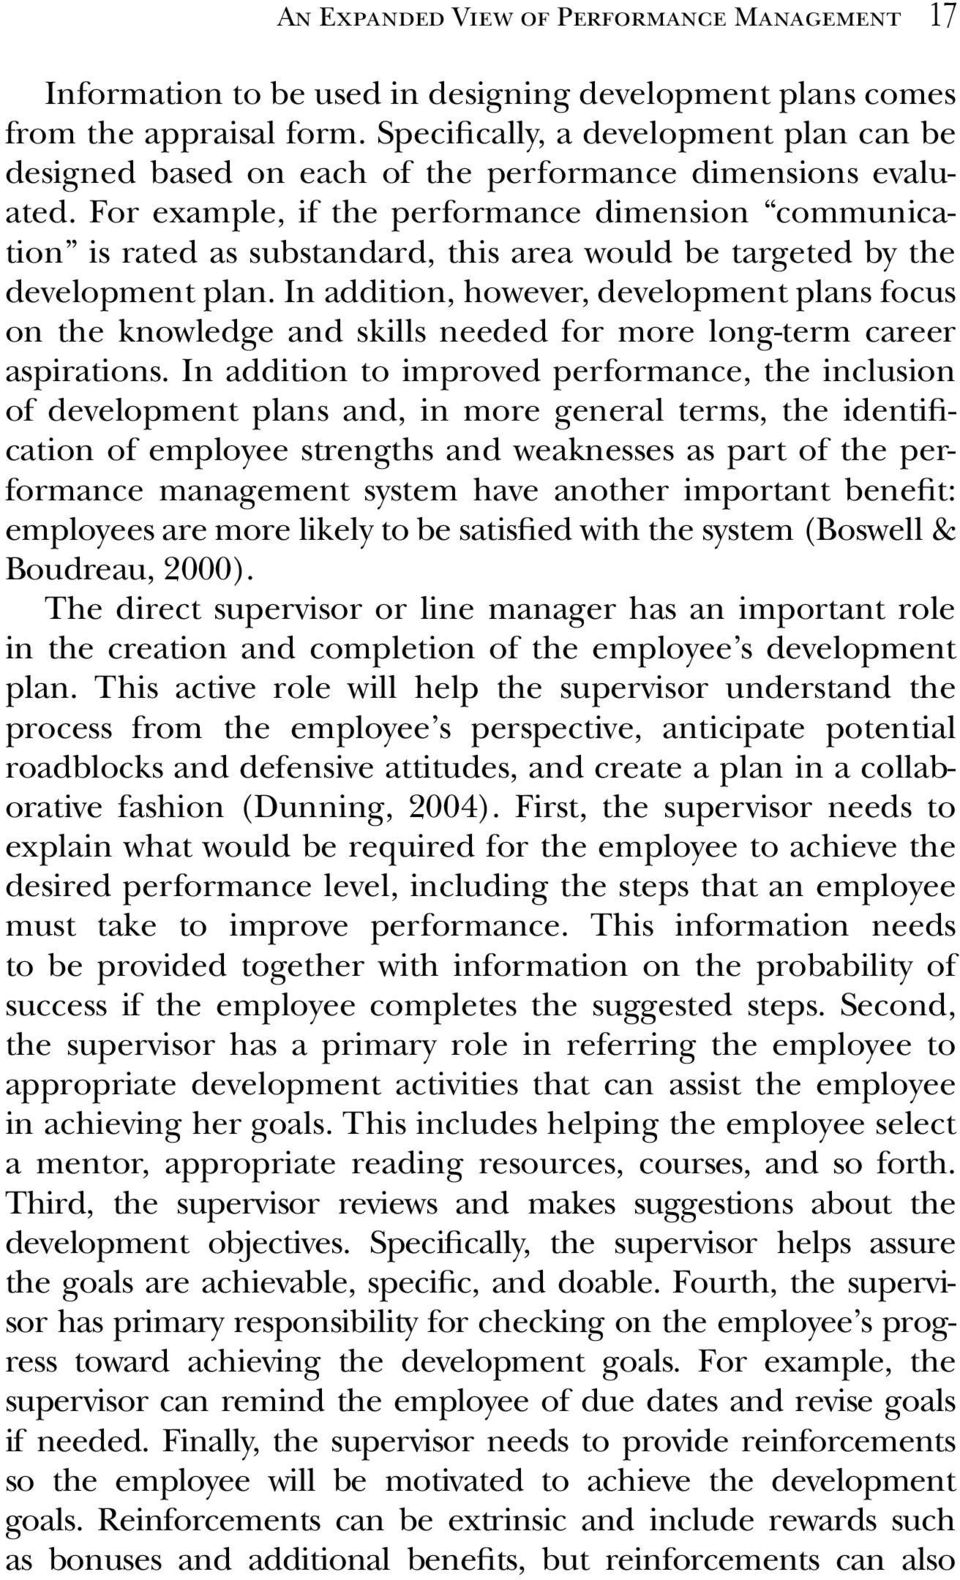 an expanded view of performance management an expanded view of for example if the performance dimension communication is rated as substandard this area would